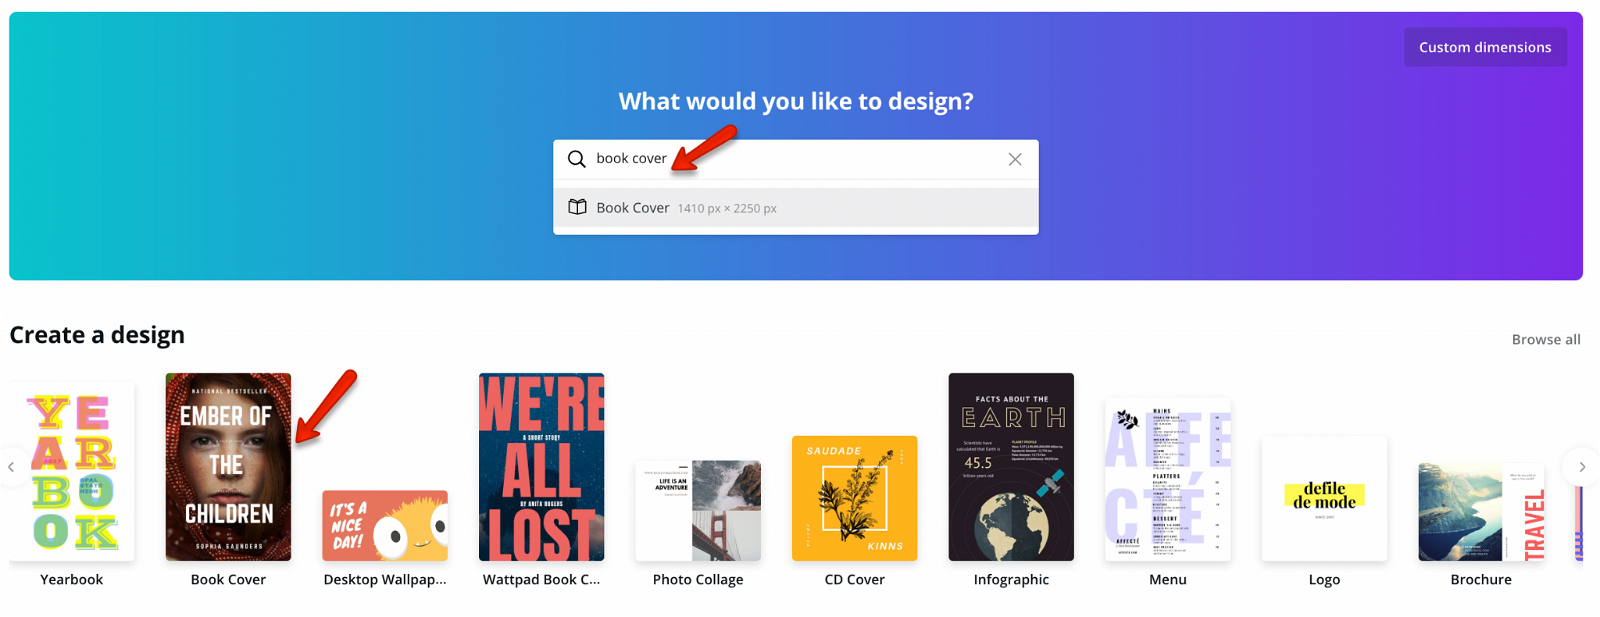 Free Book Cover Makers for Non-Designers. Thinkmaverick